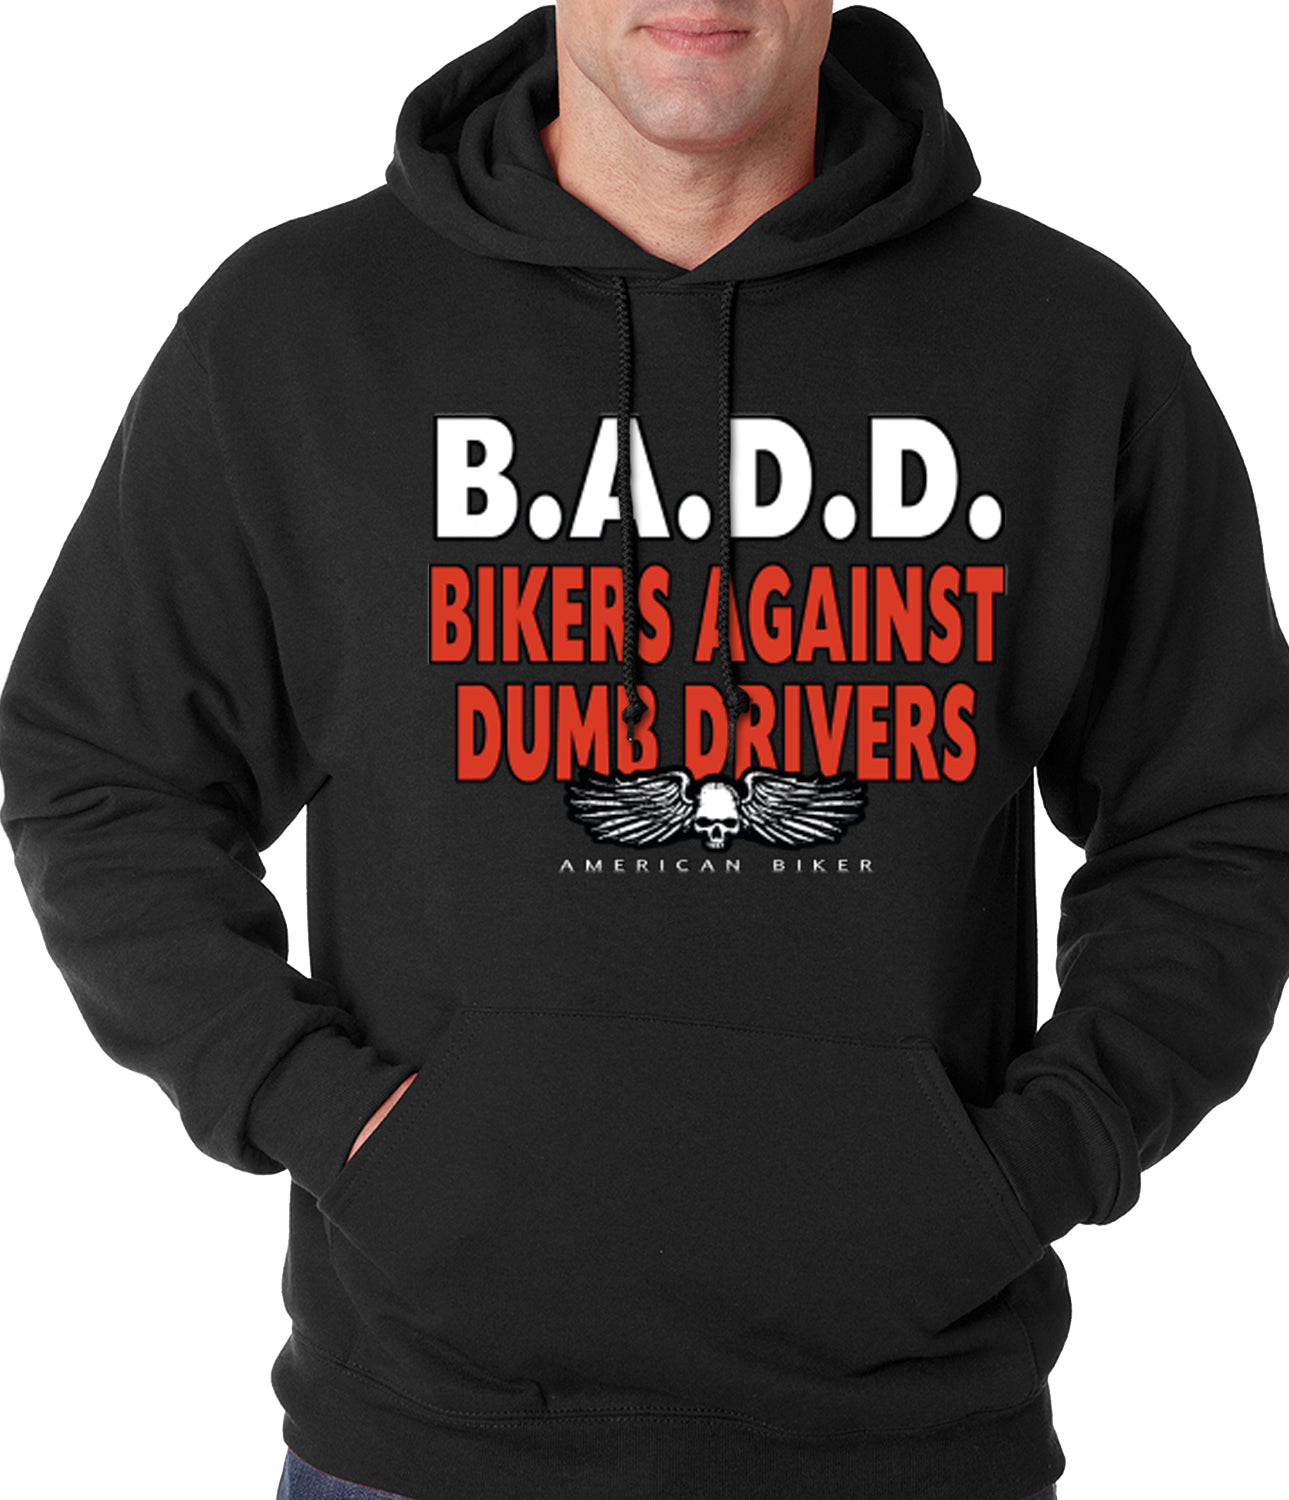 Bikers Against Dumb Drivers Hoodie black